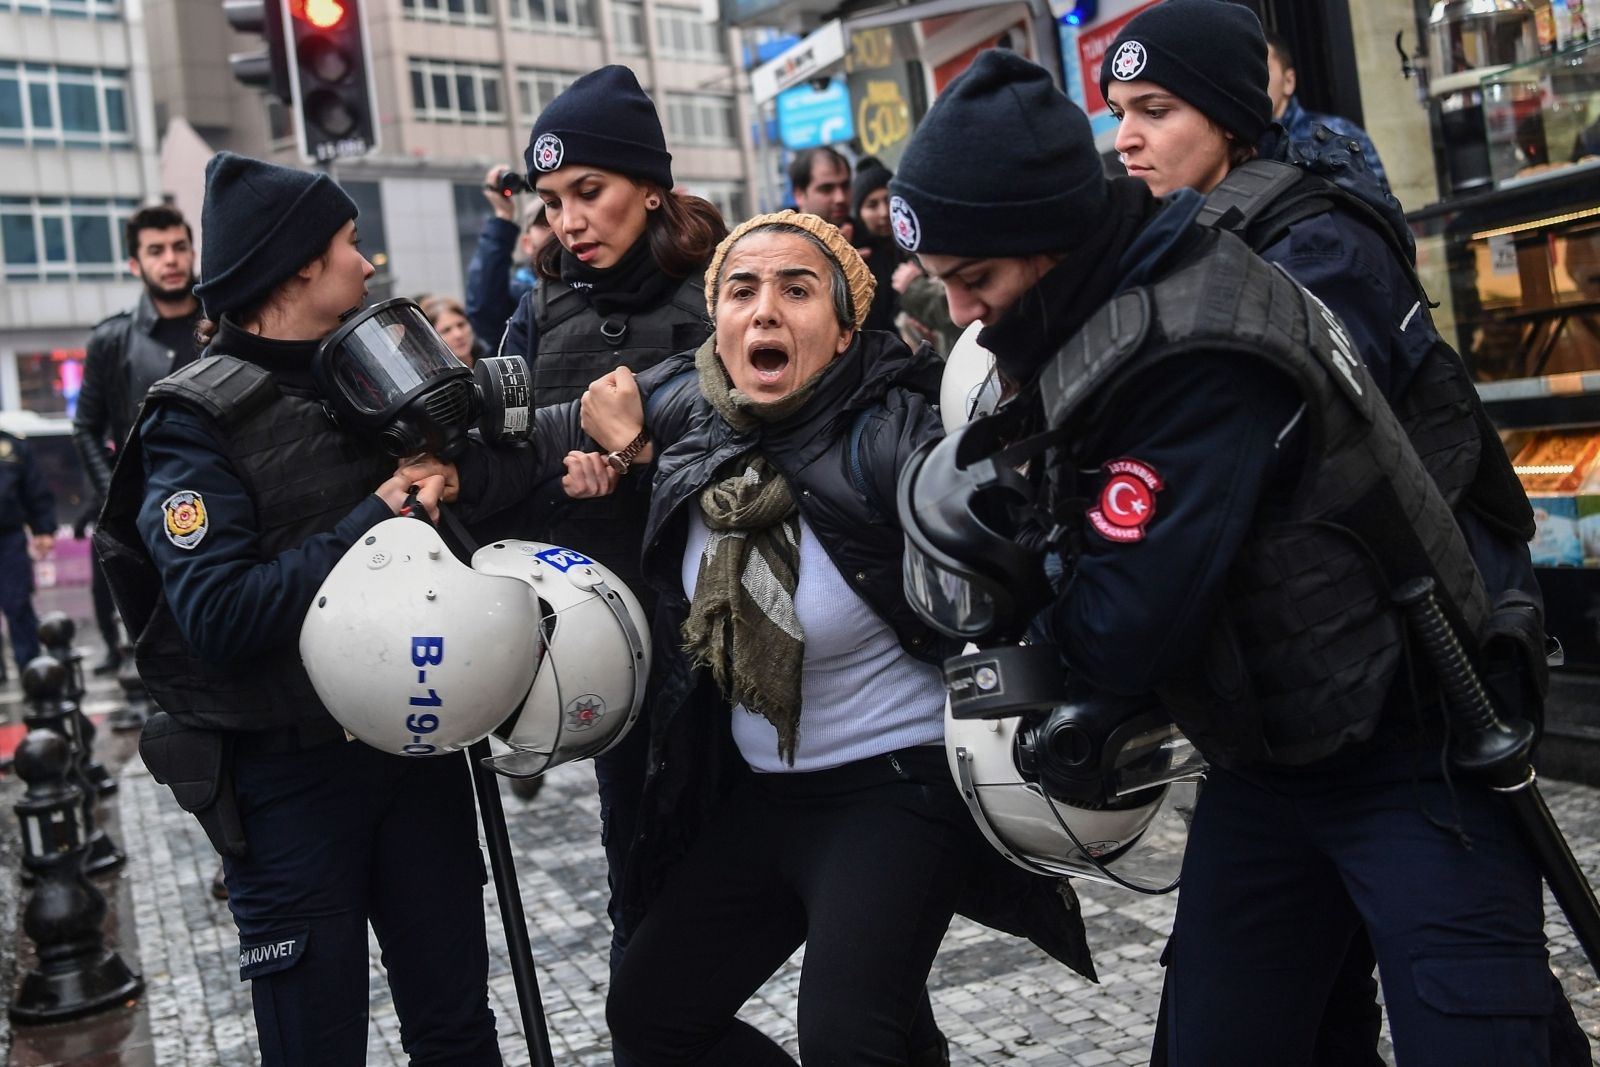 Turkish protests operation olive branch